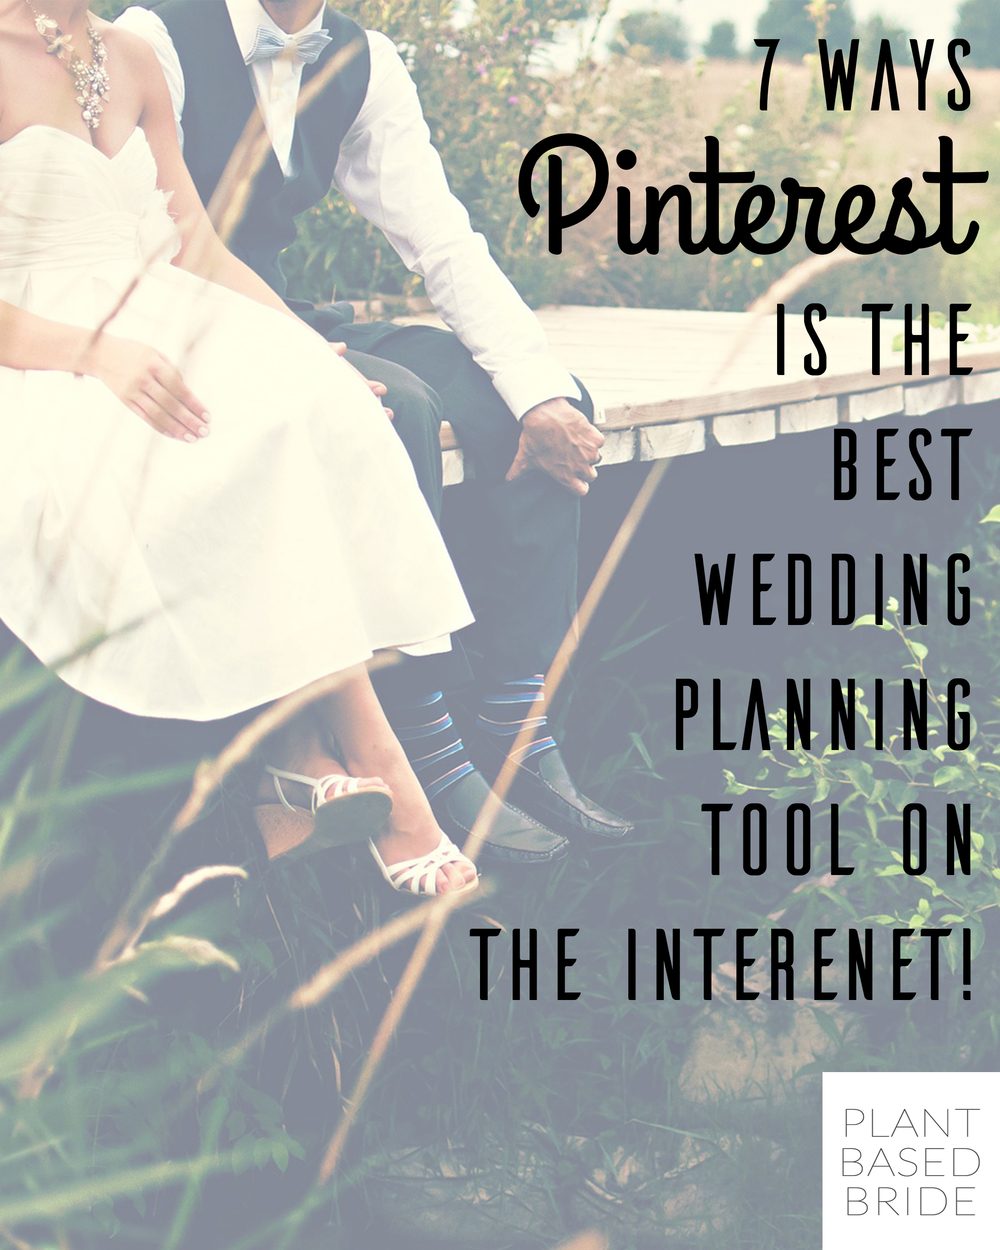 Learn how to use Pinterest to plan the best wedding ever over at plantbasedbride.com!